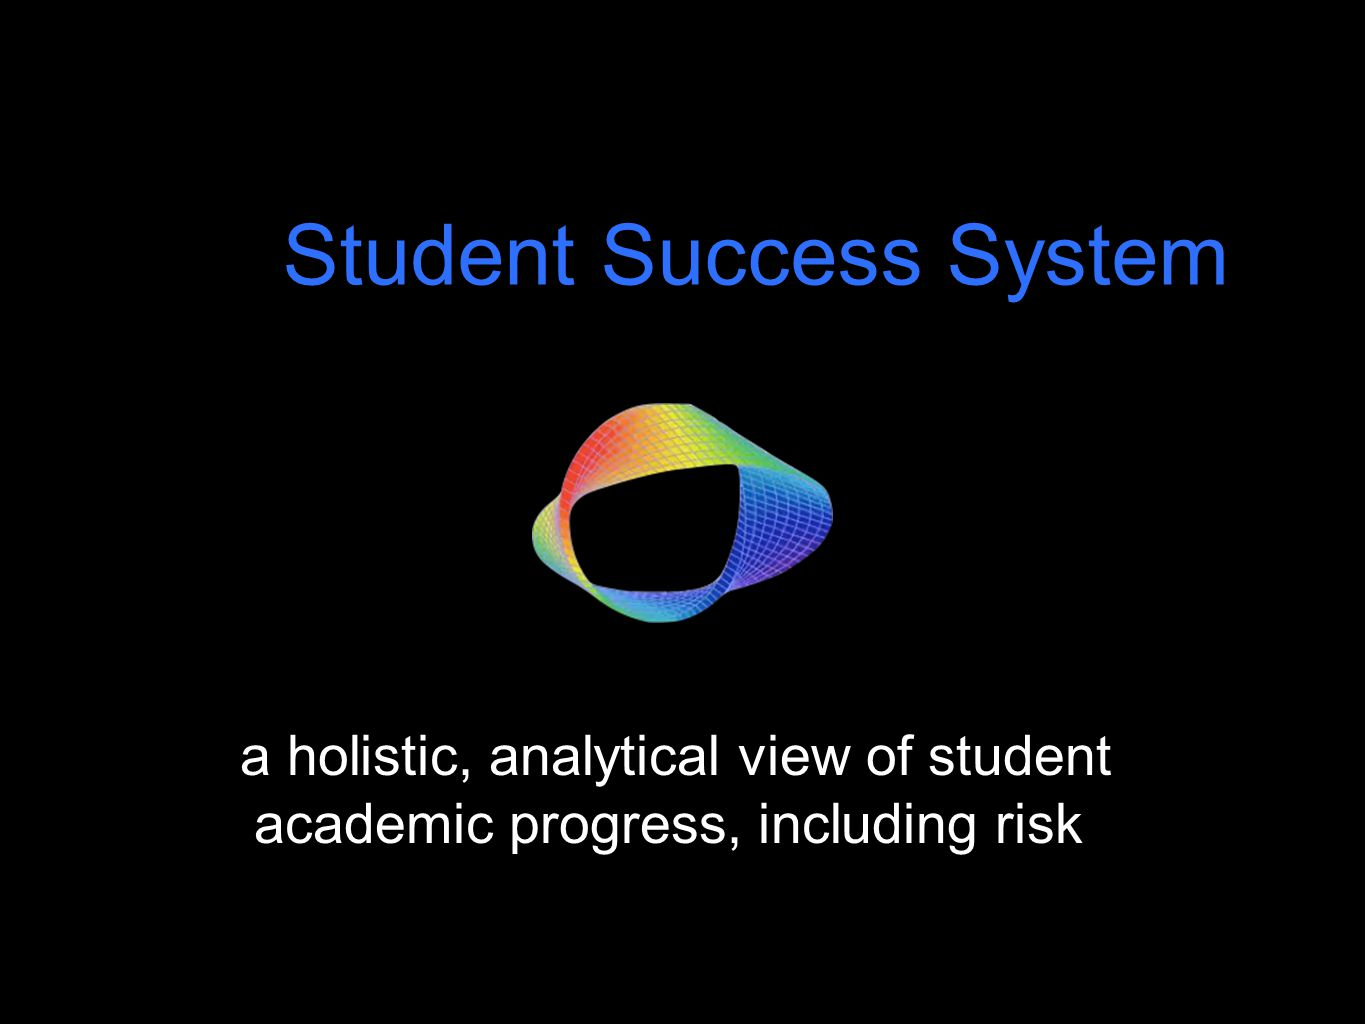 a holistic, analytical view of student academic progress, including risk Student Success System